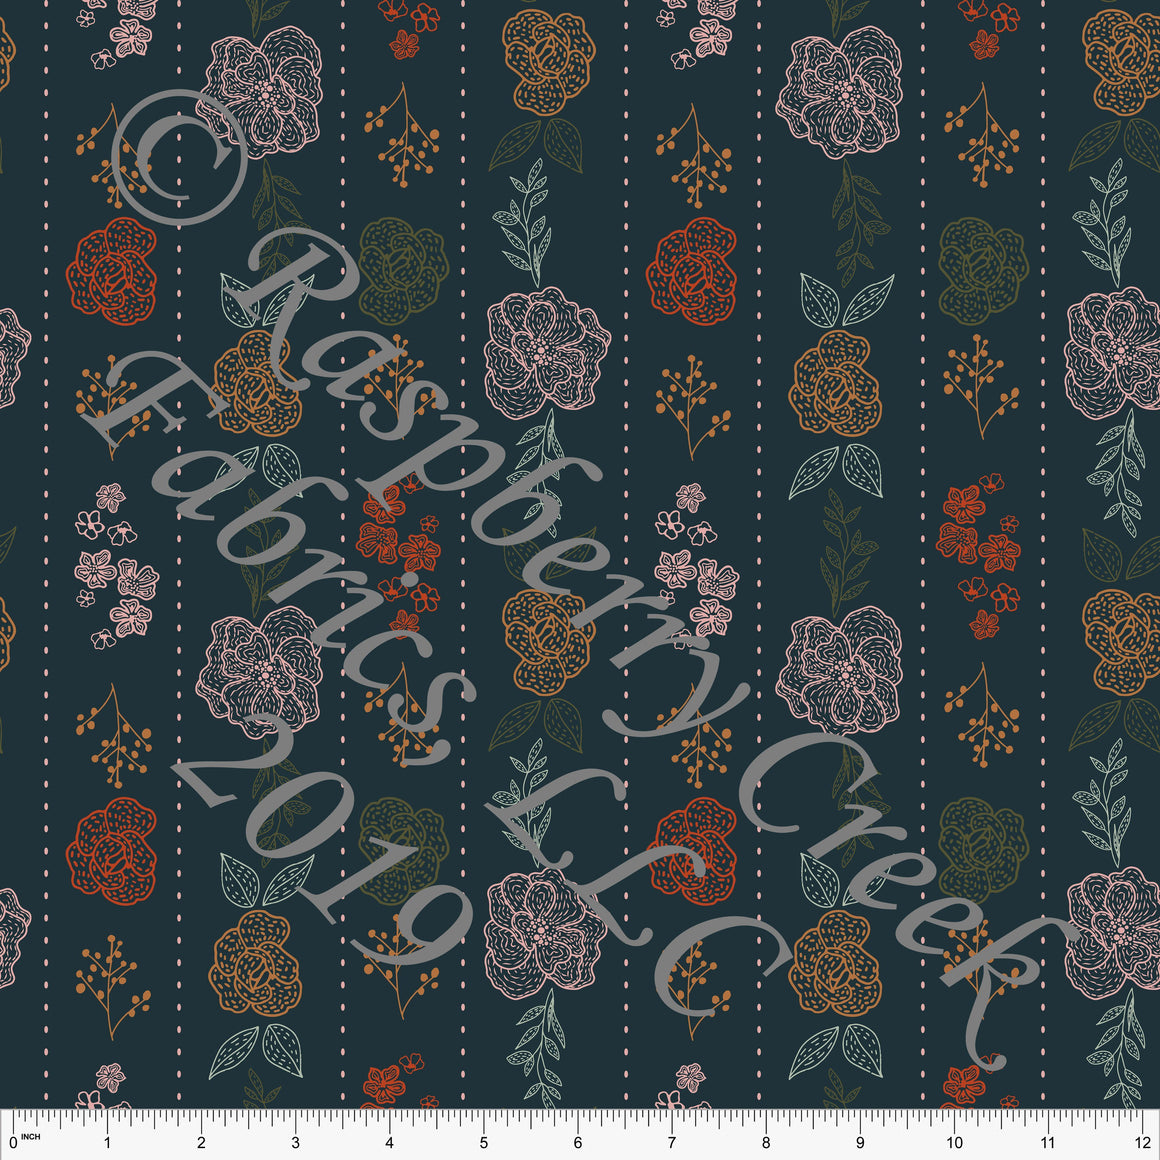 Deep Teal Blush Olive and Bright Rust Wildflower Vertical Stripe By Kimberly Henrie for CLUB Fabrics